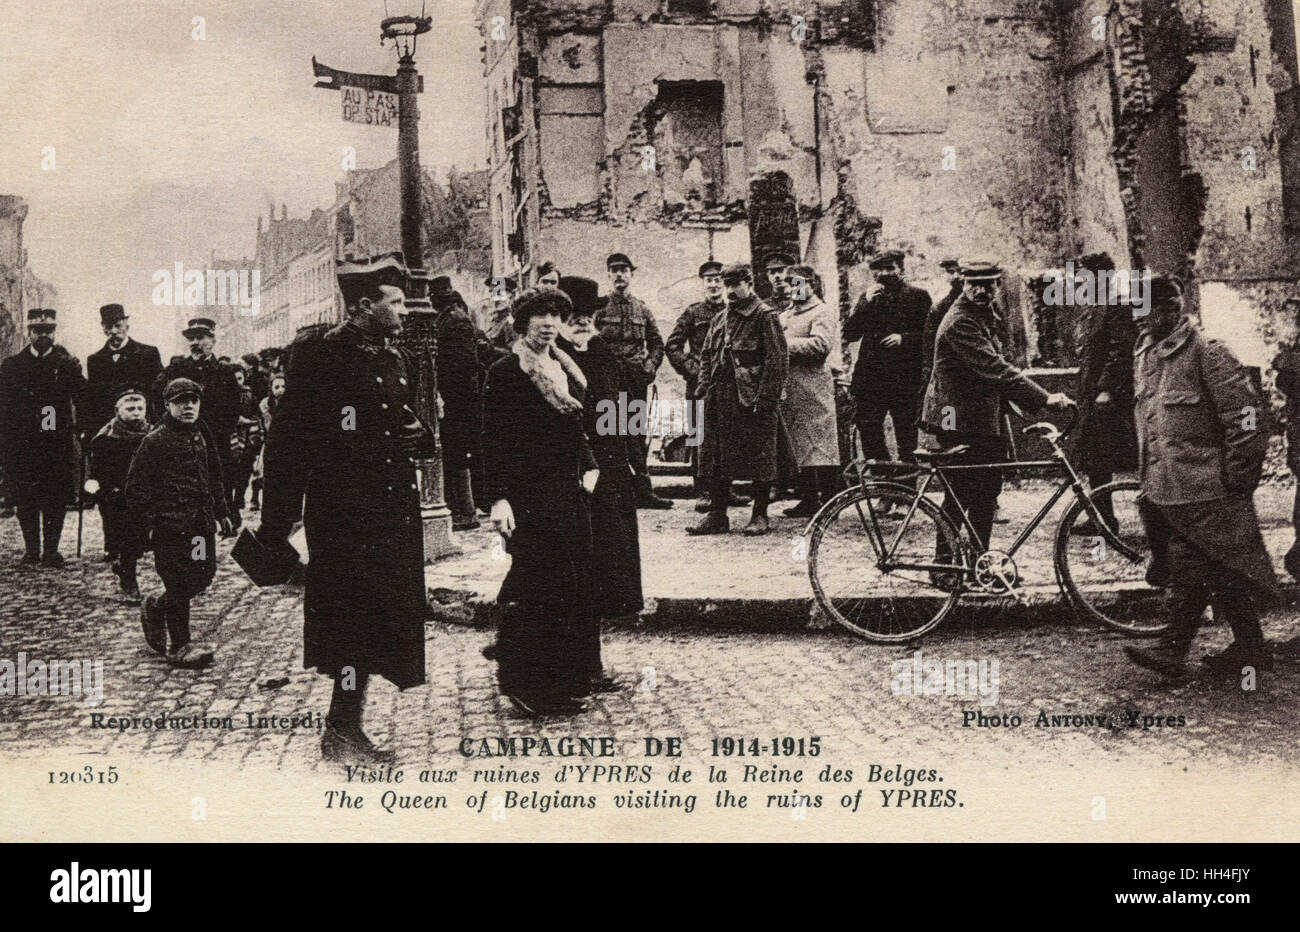 WW1 - Elisabeth of Bavaria (1876-1965), Queen of Belgium visiting the shattered ruins of Ypres. Despite her German background, she was a popular queen, perceived as eagerly supporting her adoptive country. Stock Photo